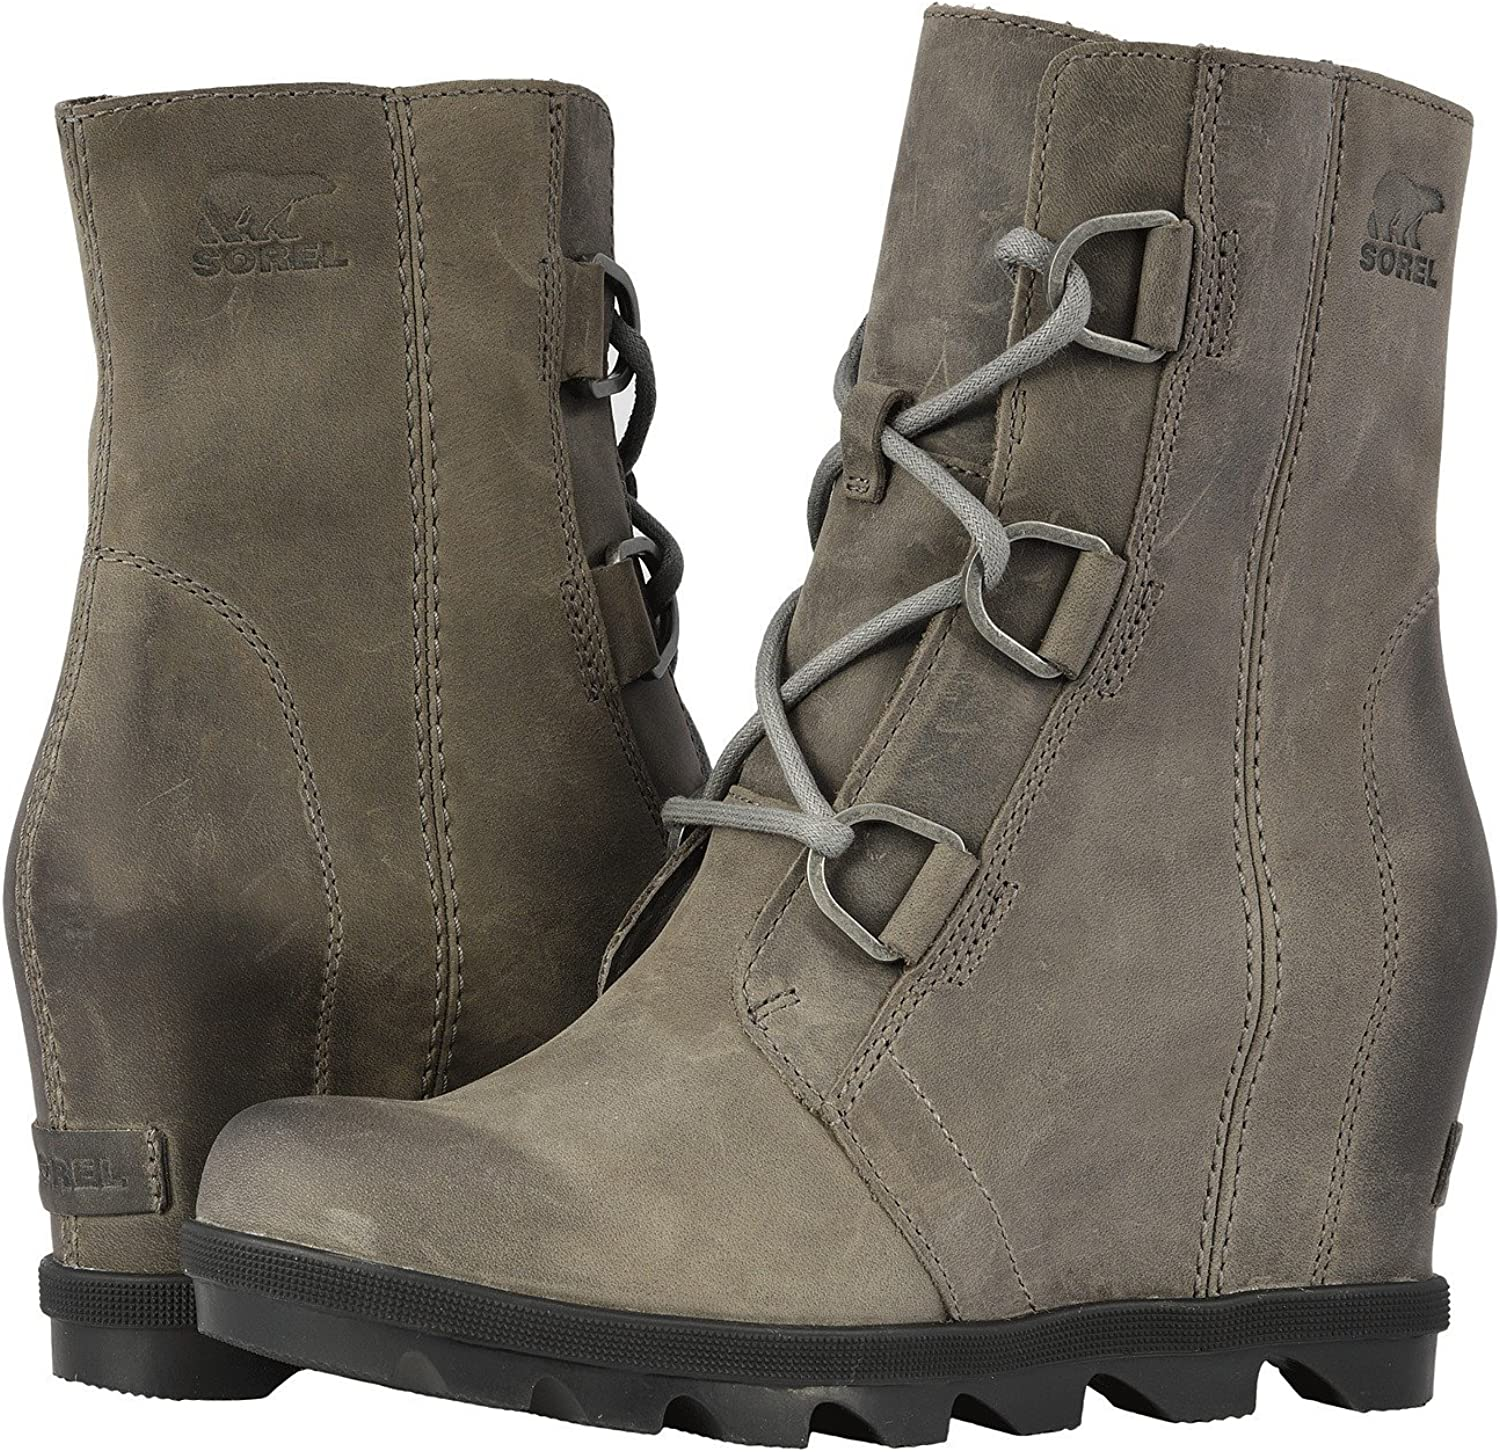 New Sorel Womens Joan of Arctic Wedge ll Boot Waterproof Leather Rain Fashion